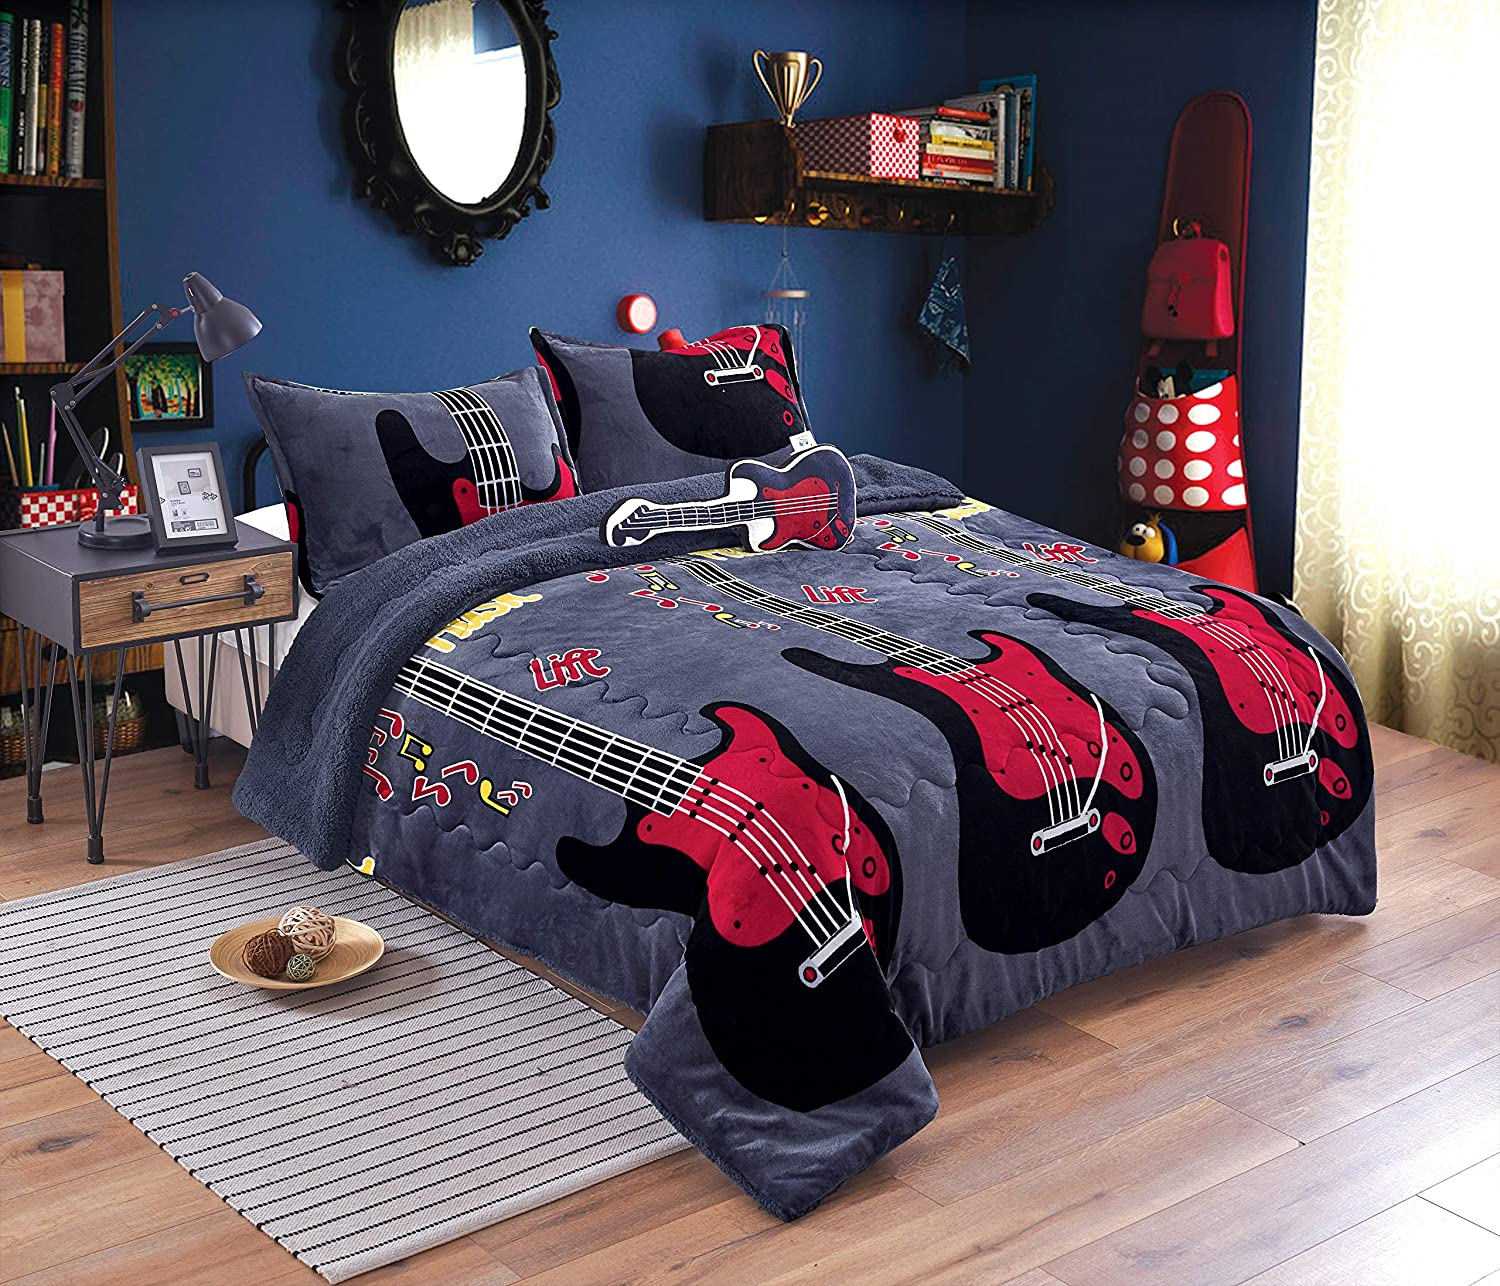 Electric guitar 3D Print Sherpa Blanket Sofa Couch Quilt Cover Bedding Blanket